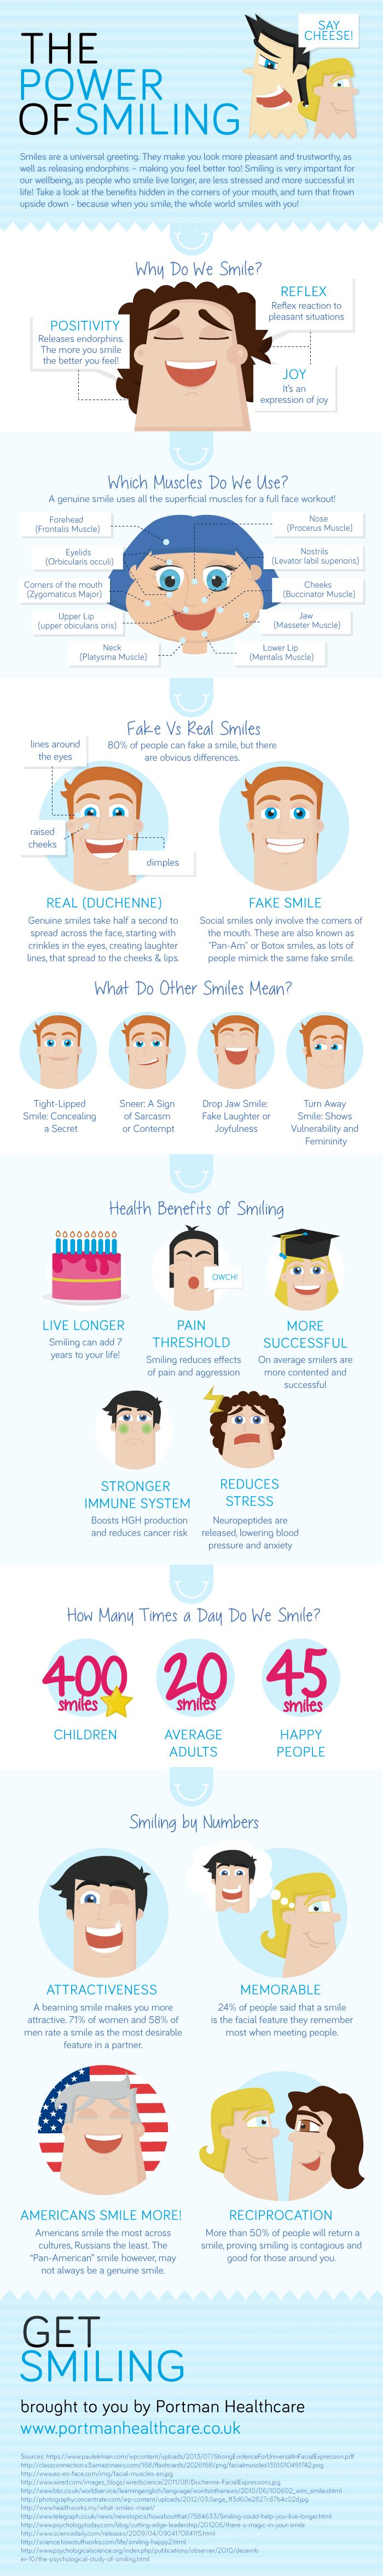 The Power of Smiling #infographic #Smile #Health                                                                                                                                                     More